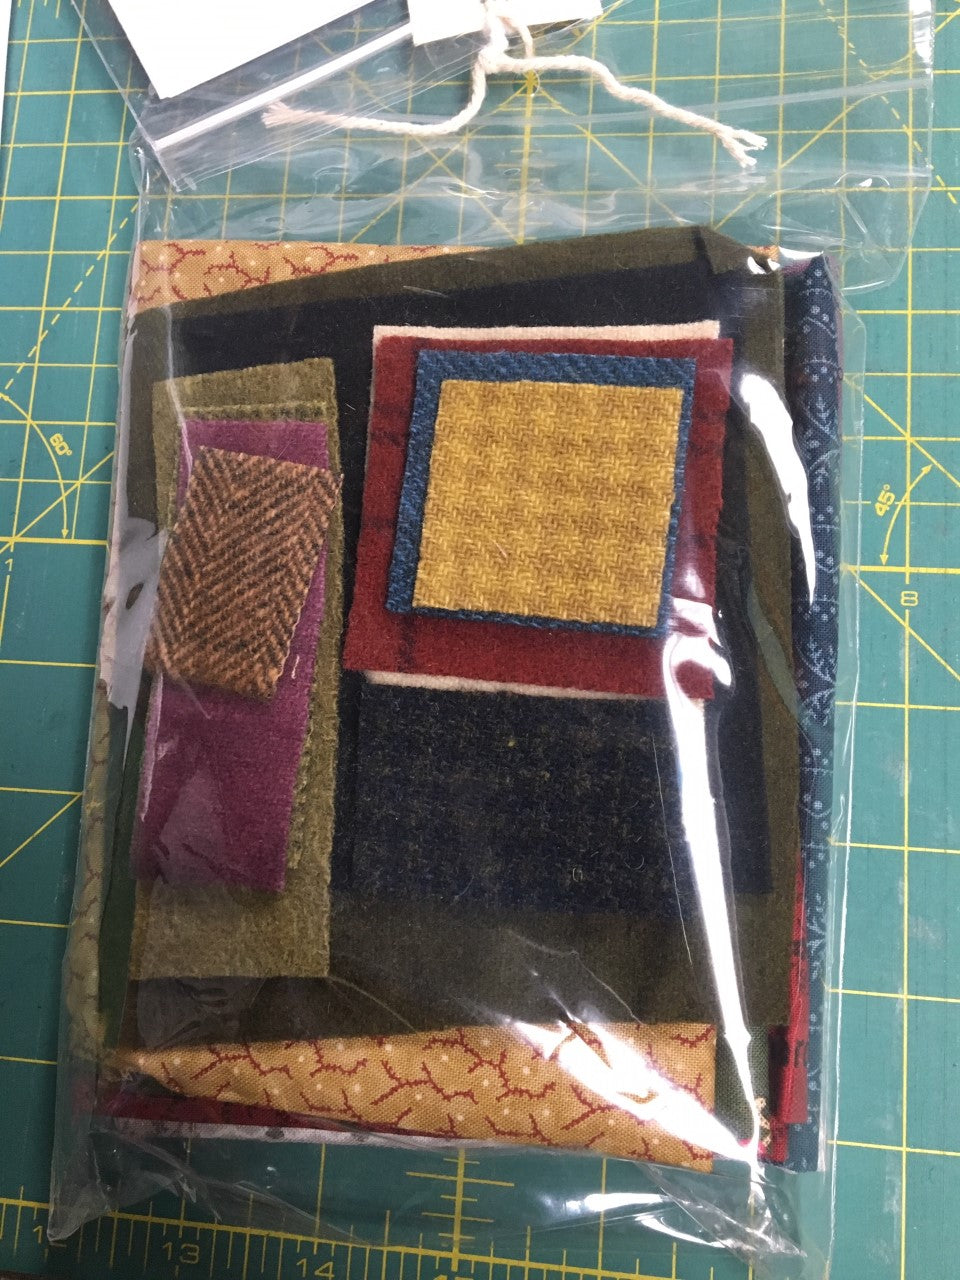 Snugg-let wool applique on fabric mini full kit